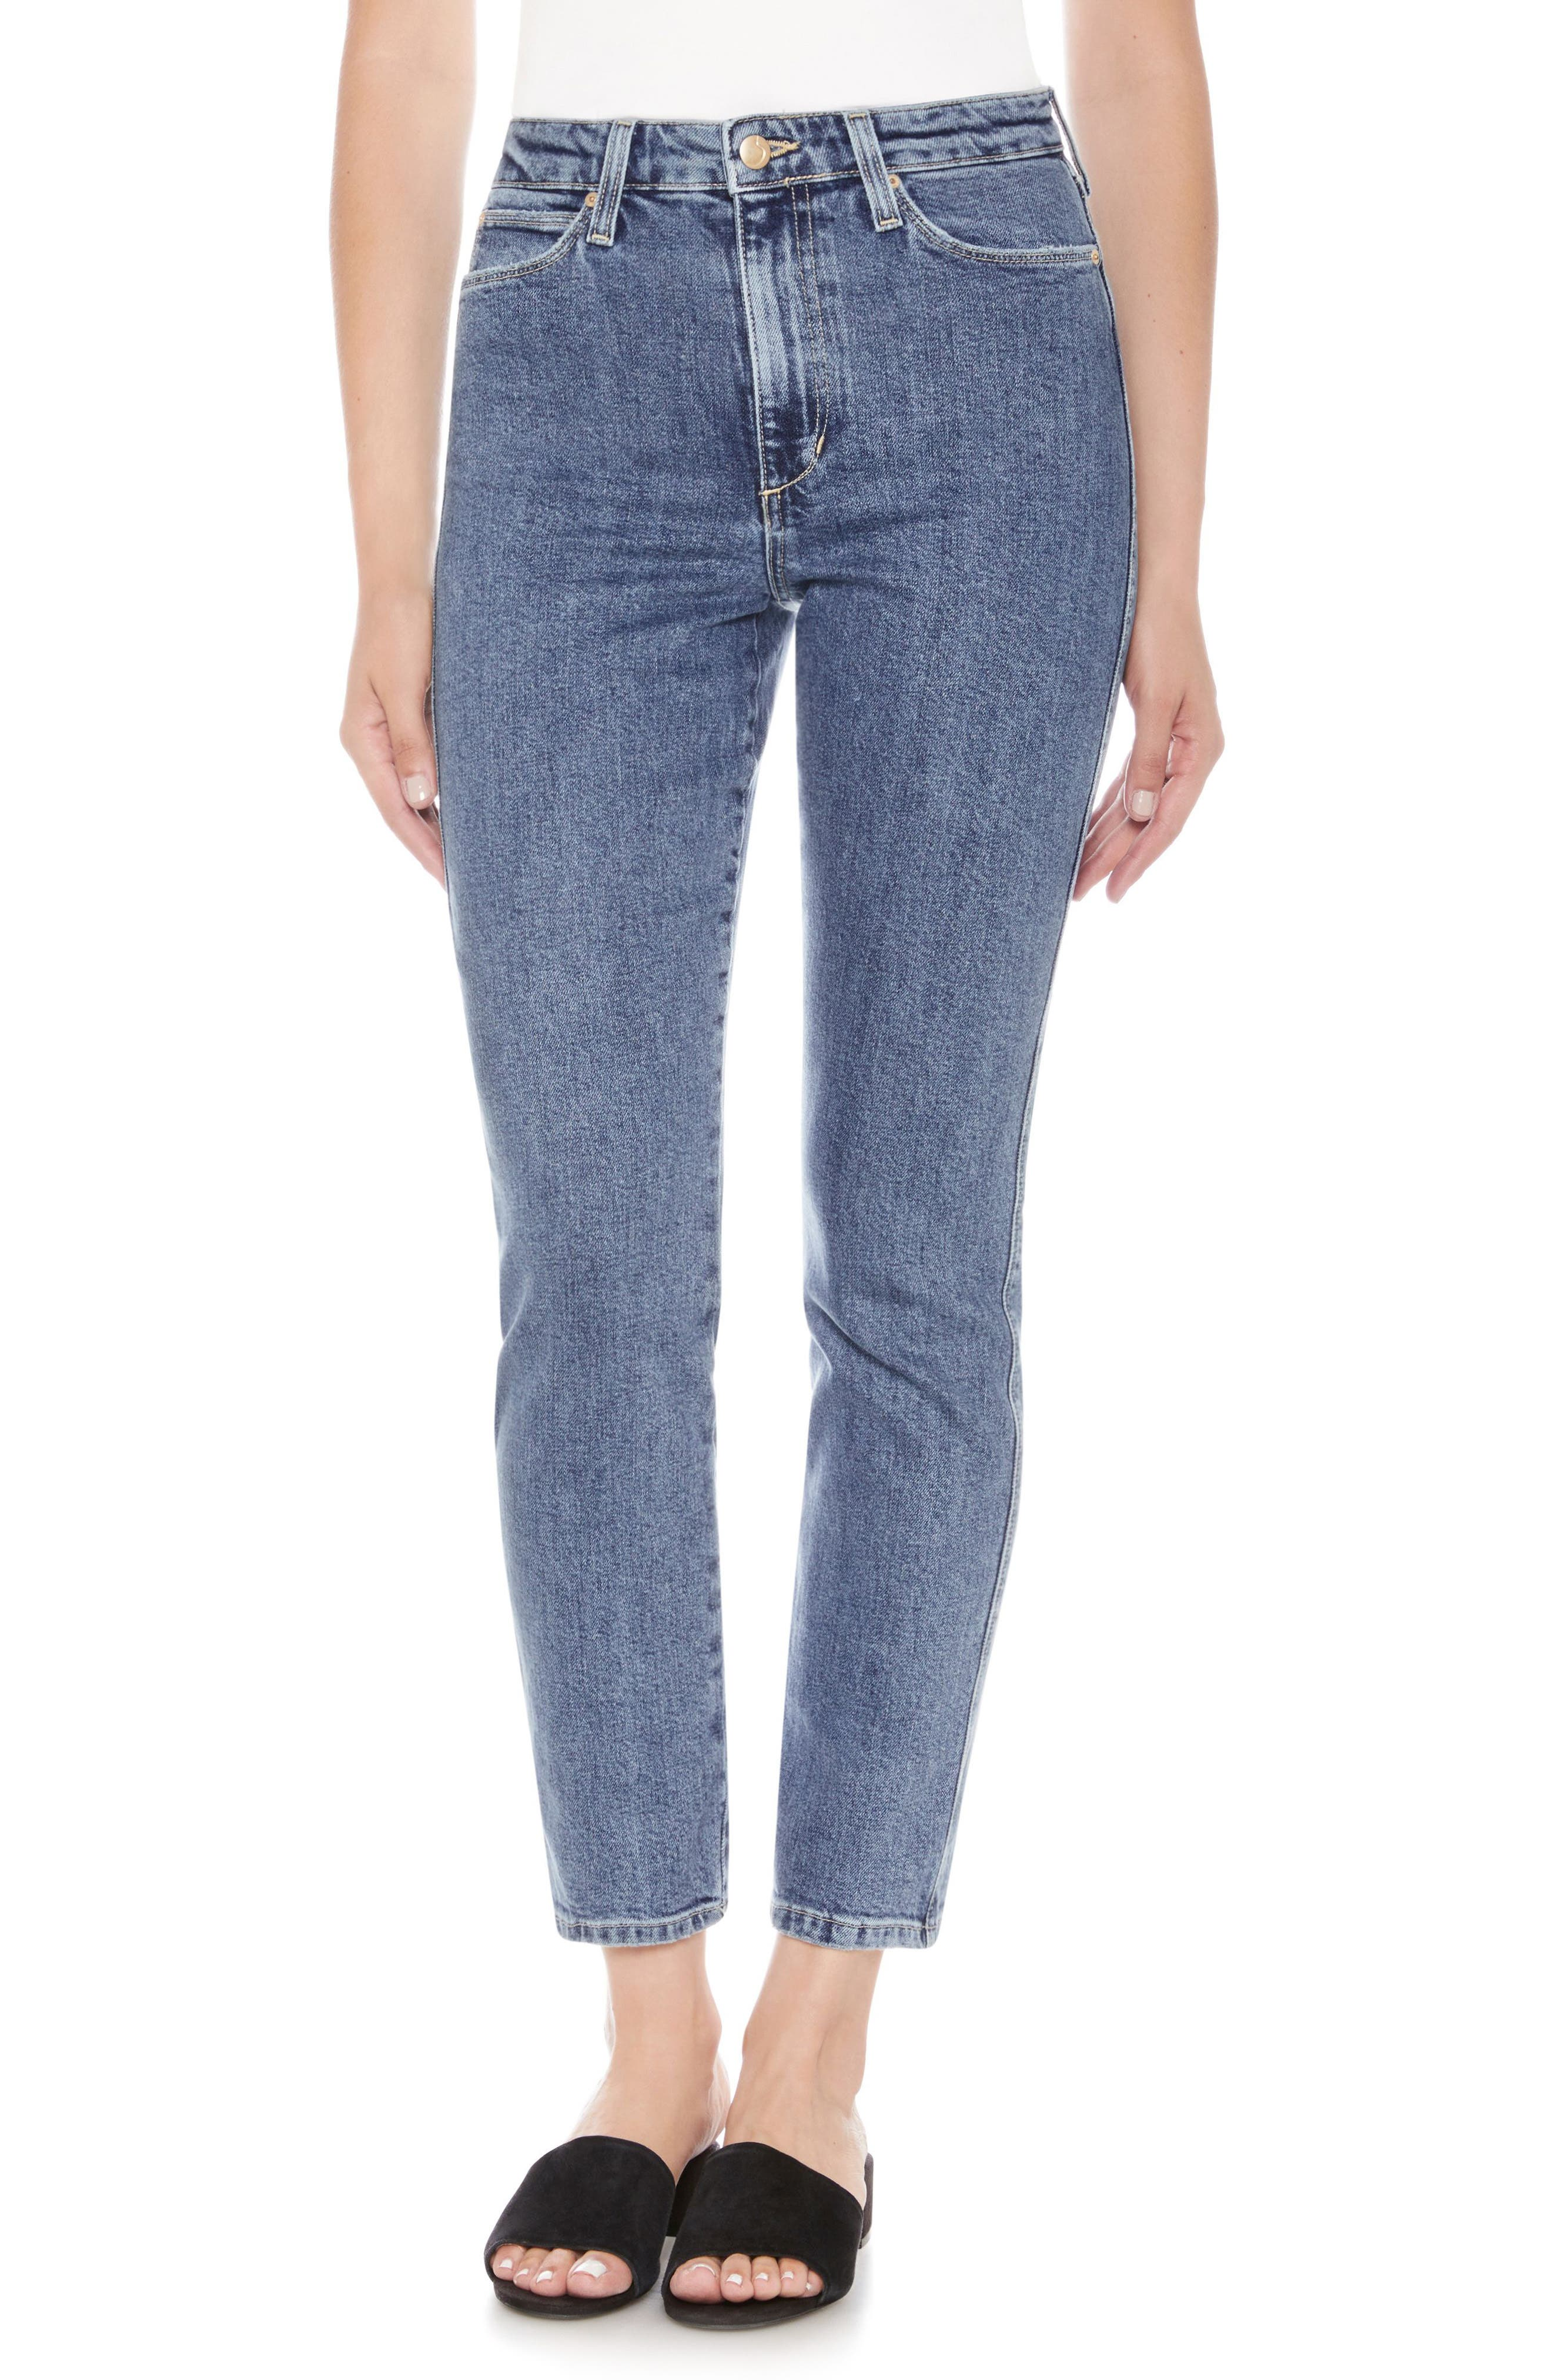 Kass Ankle Skinny Jeans,                             Main thumbnail 1, color,                             415